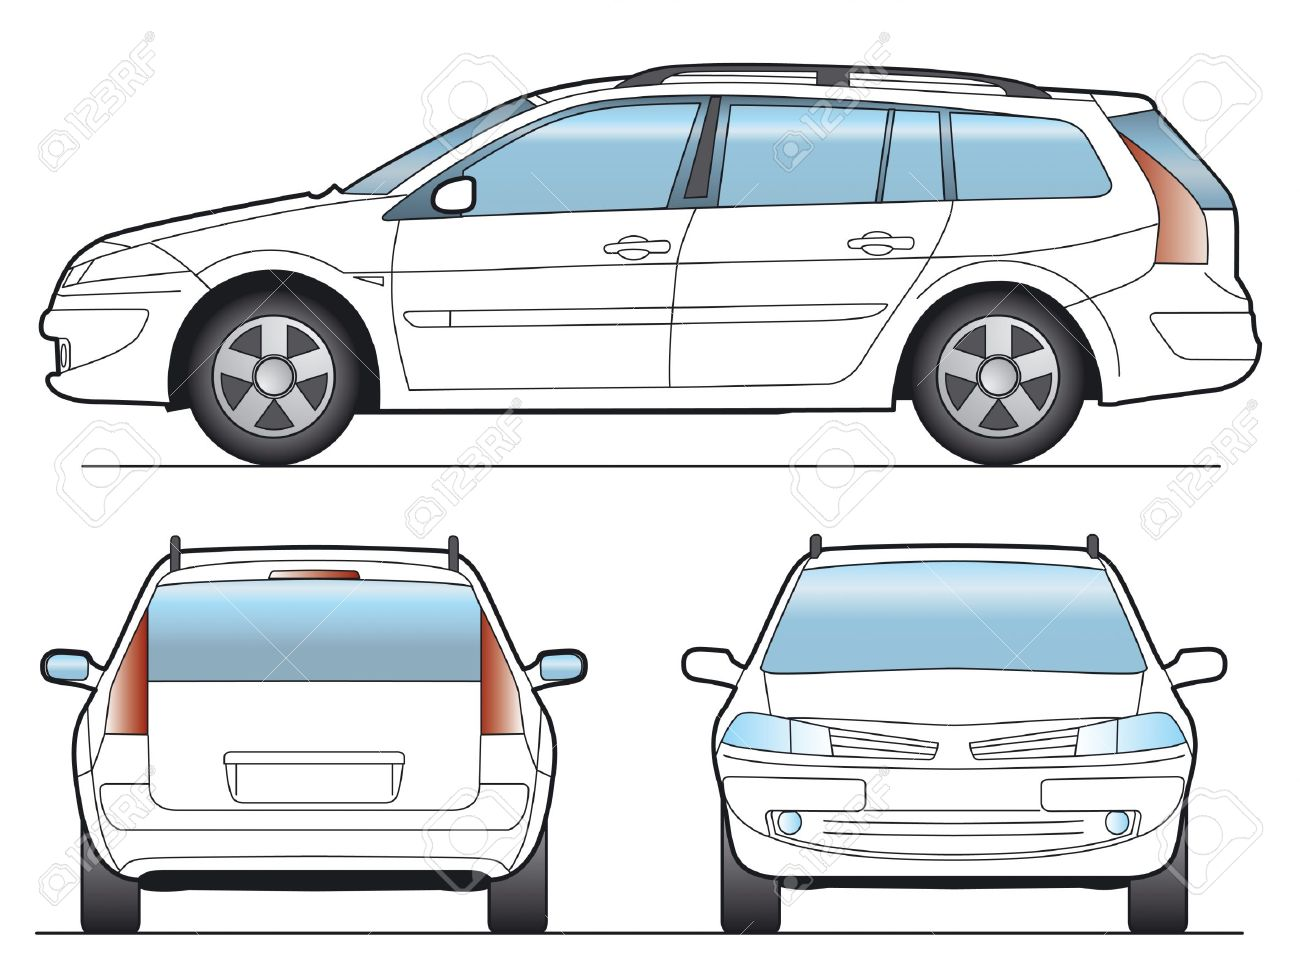 1648382-SW-Car-Layout-for-presentation-vector-Stock-Photo-car-outline-rear